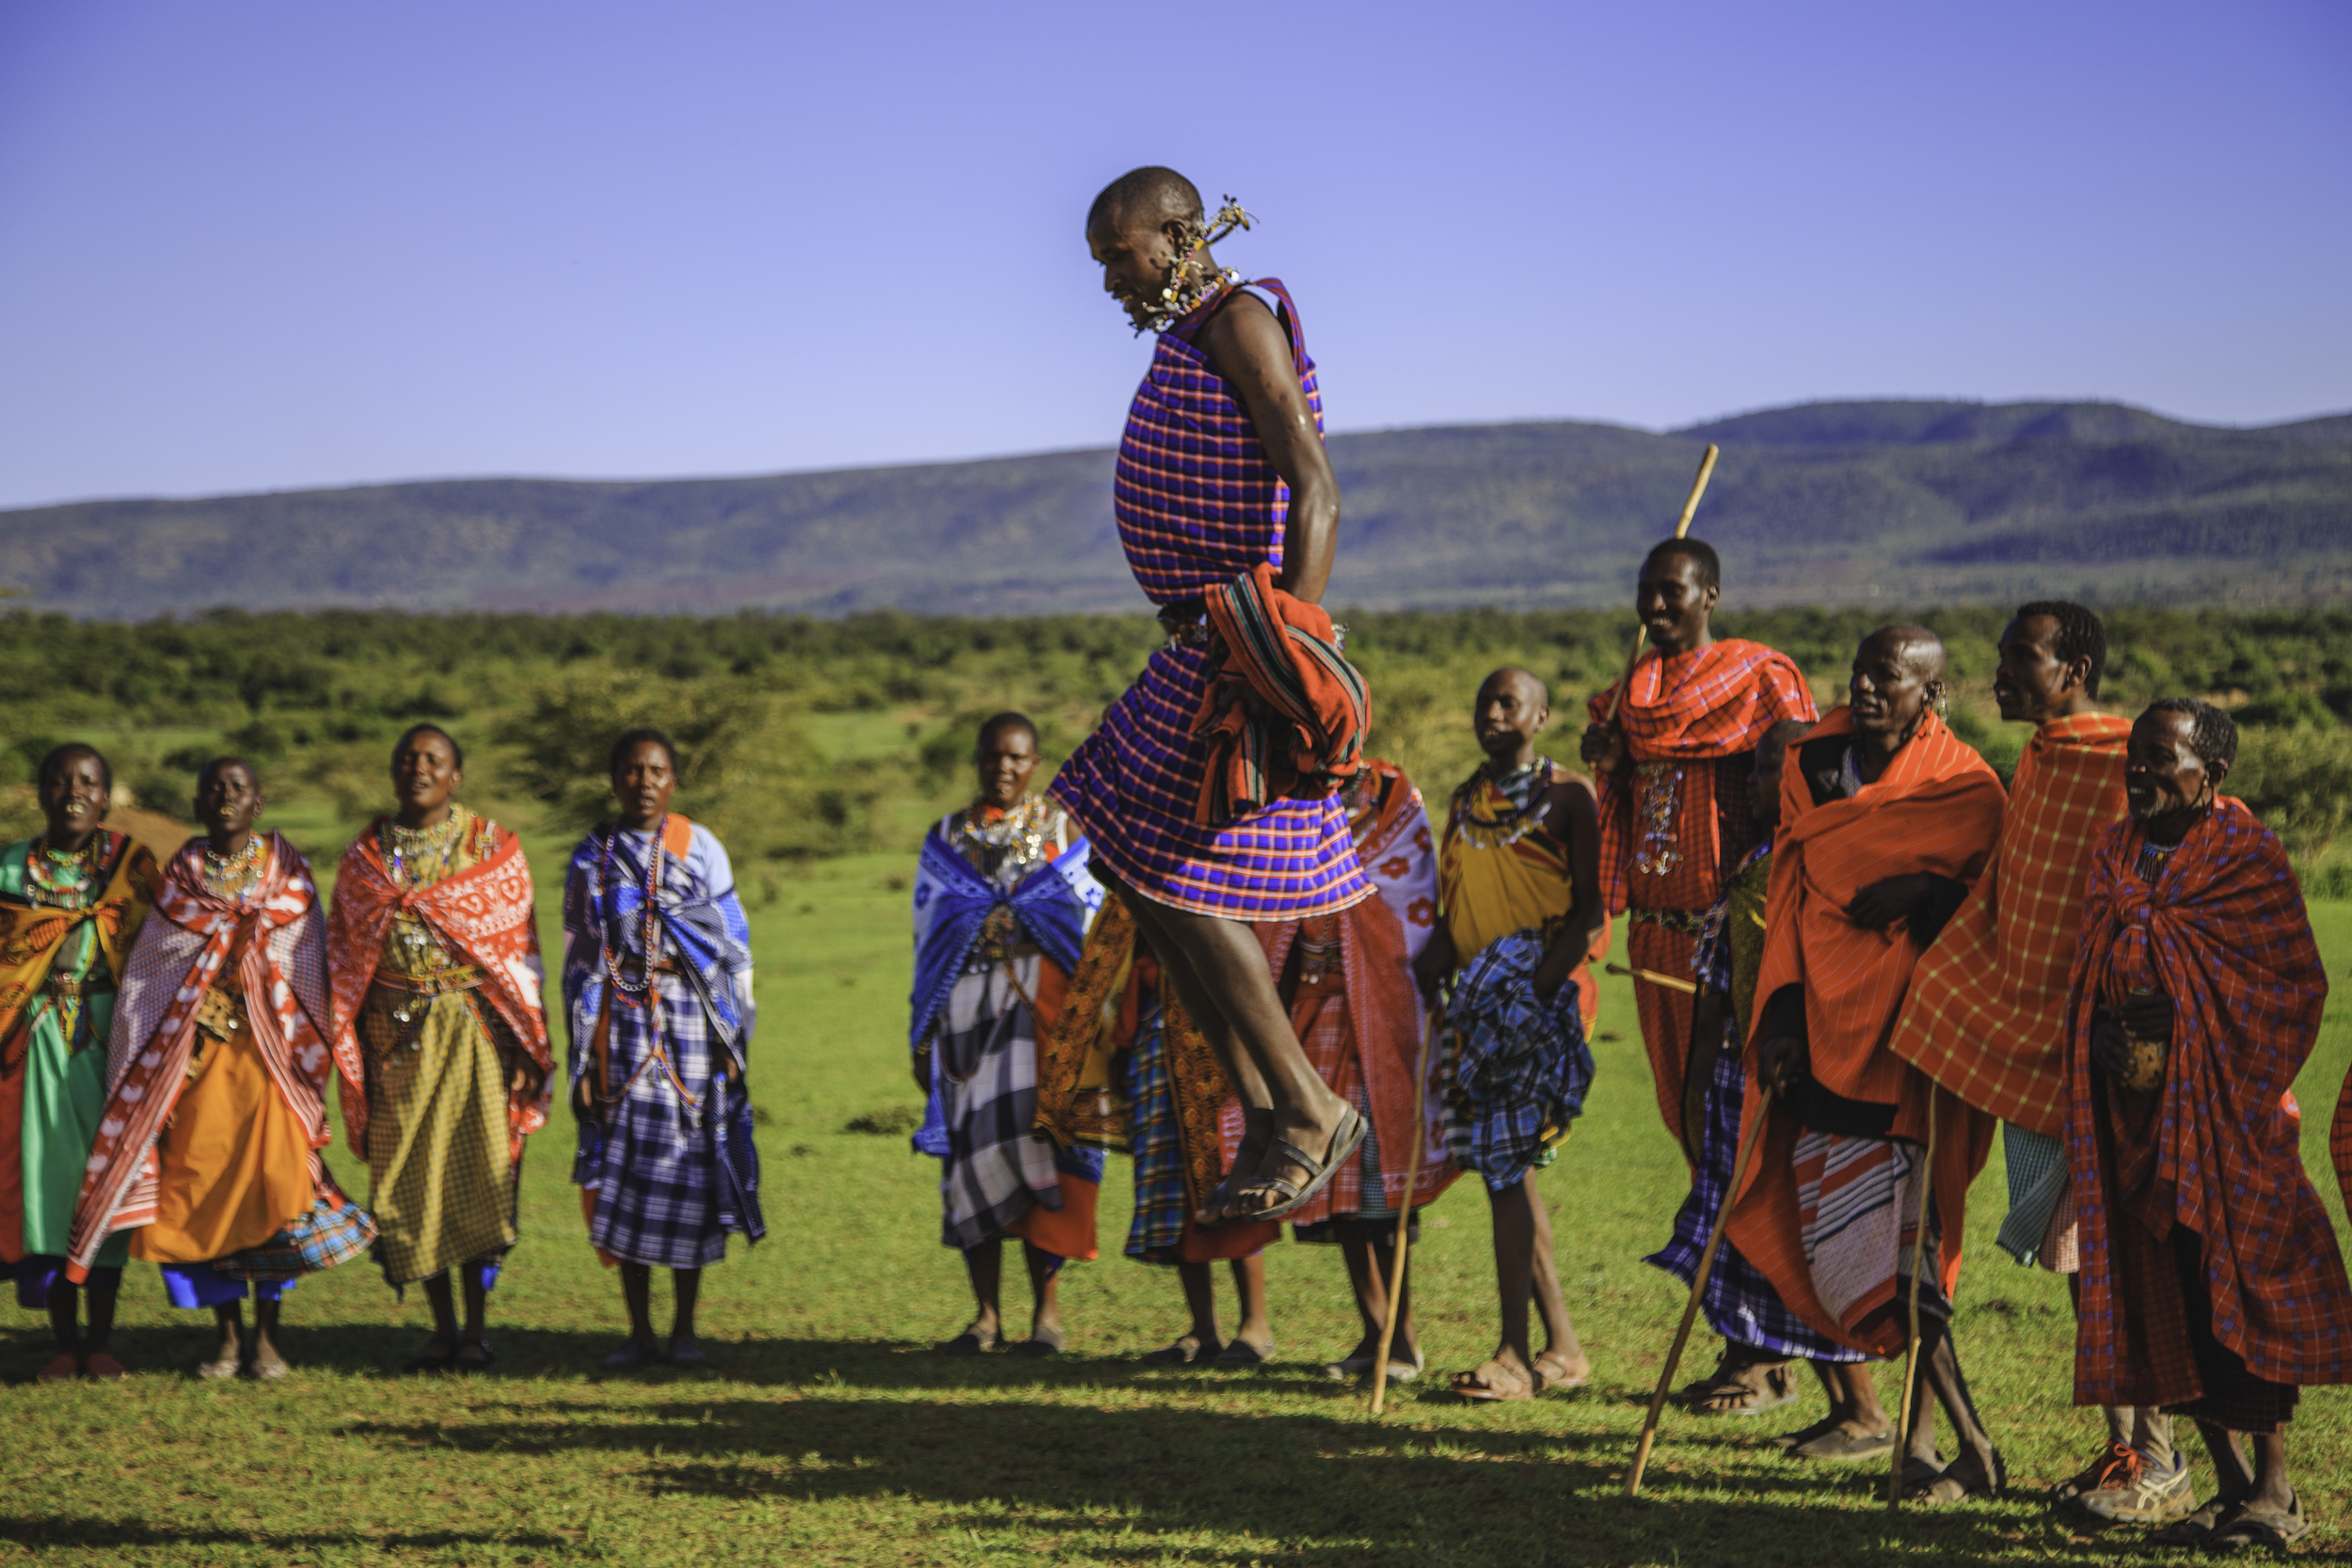 A tribe of Maasai Warriors adopted my wife and I and threw us an impromptu marriage ceremony.